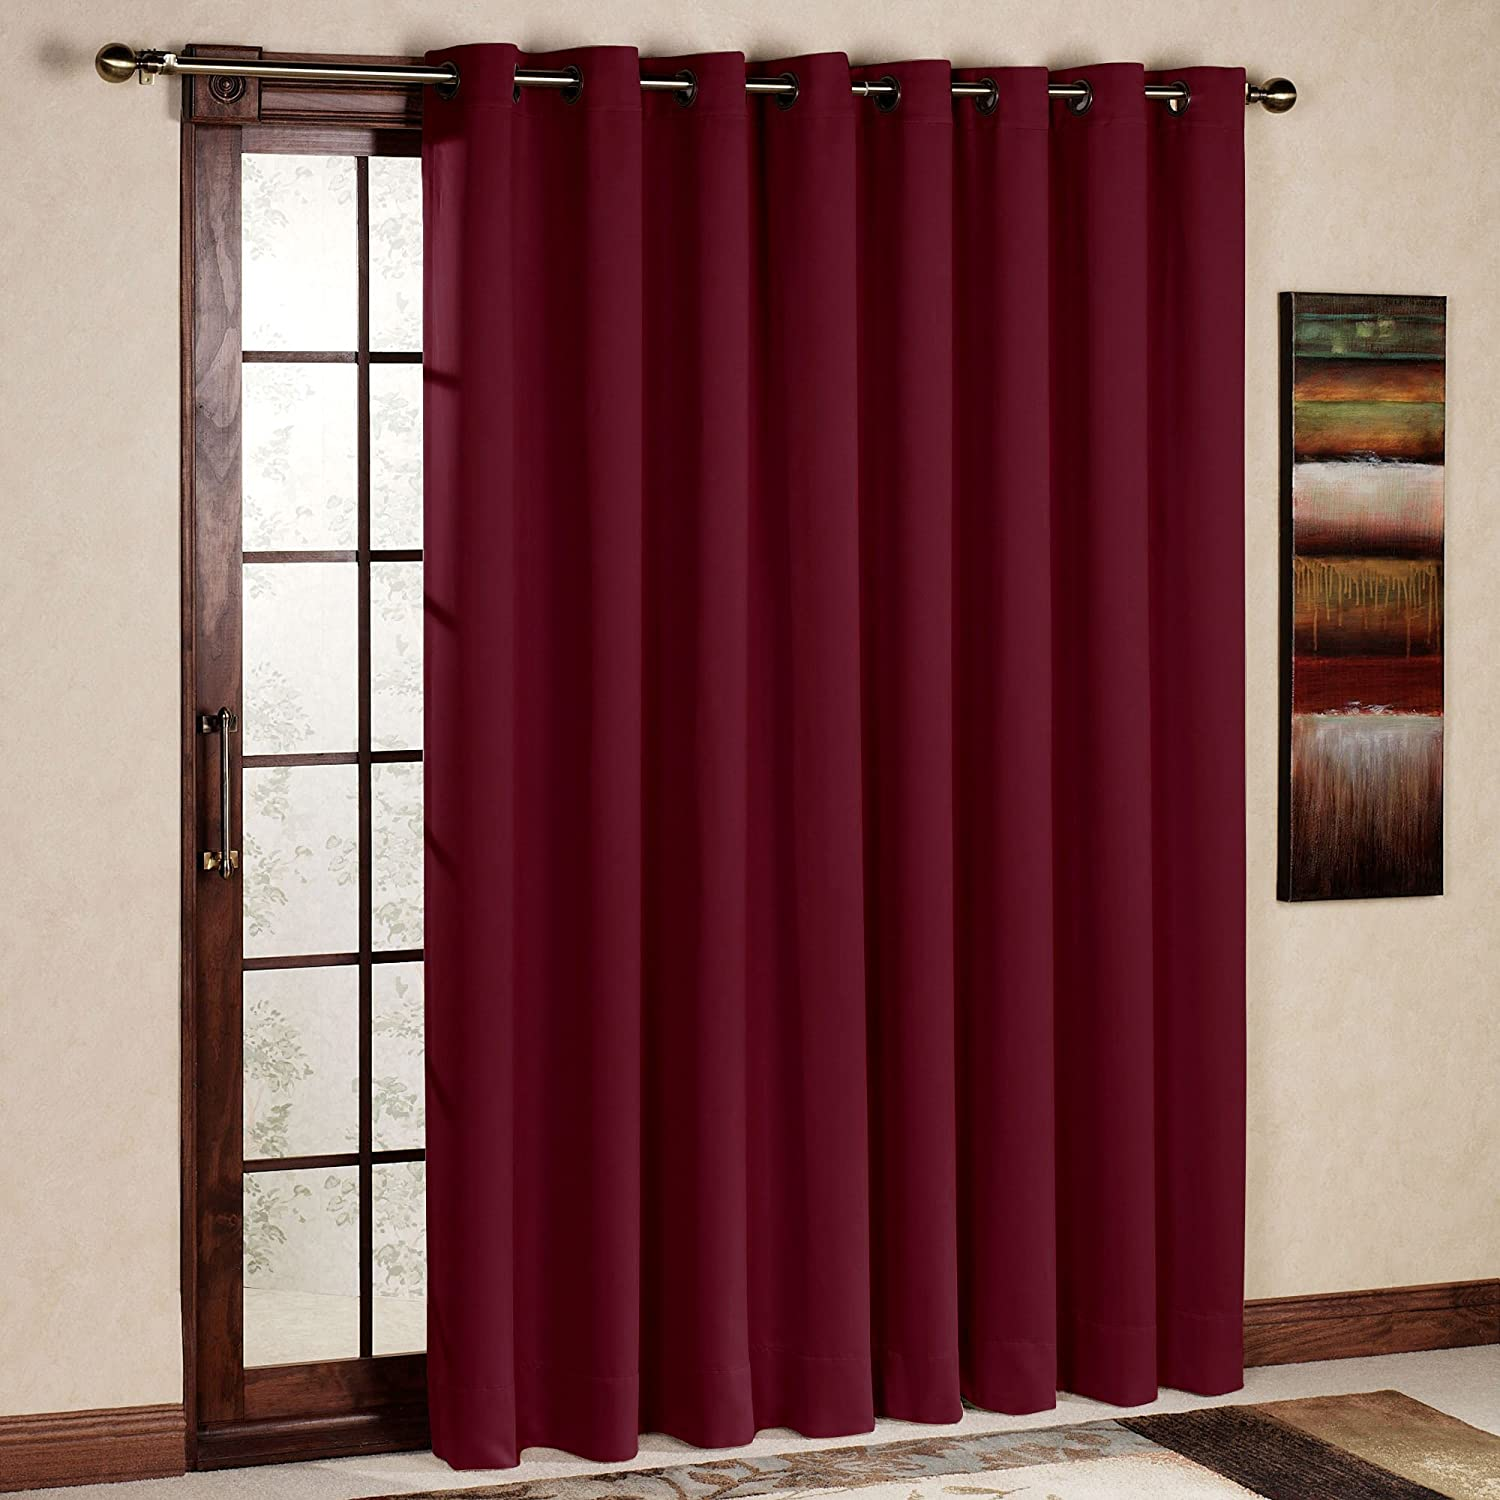 Amazon rhf wide thermal blackout patio door curtain panel amazon rhf wide thermal blackout patio door curtain panel sliding door curtains antique bronze grommet top 100w by 84l inches burgundy home kitchen planetlyrics Image collections